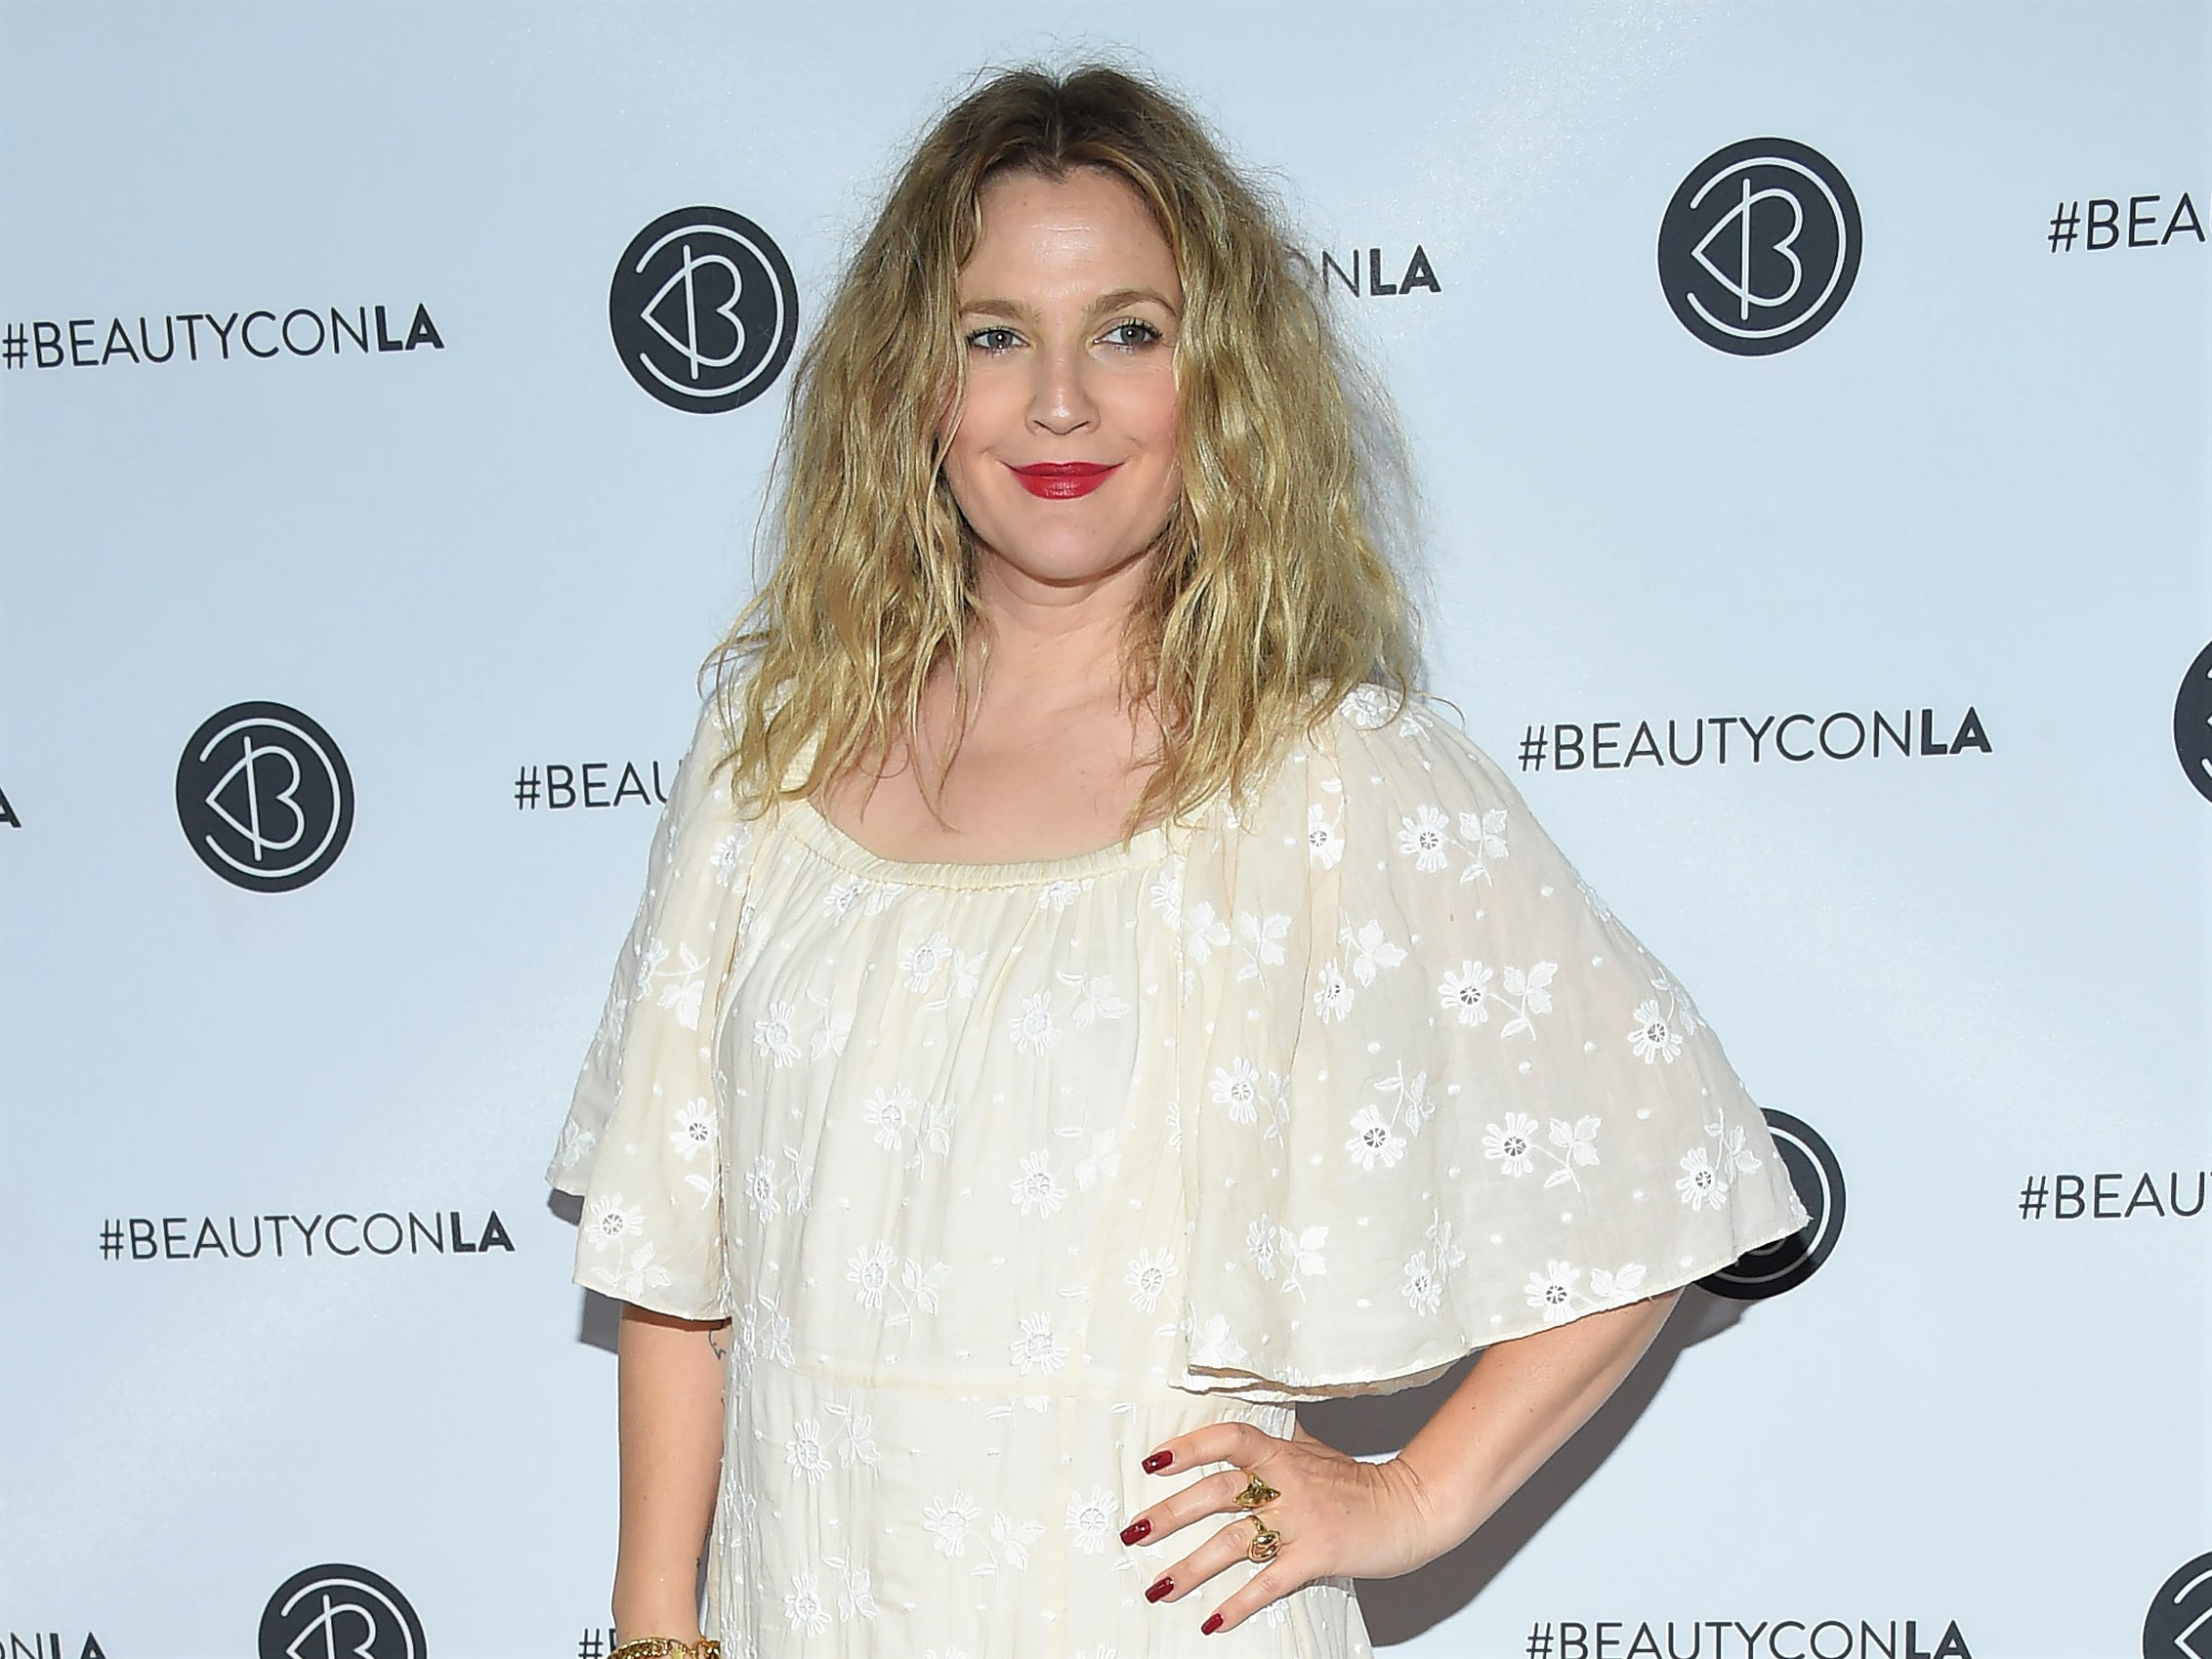 Drew Barrymore Posts Before & After Photos While Revealing She's Lost 25 Lbs: 'It's Hard AF'